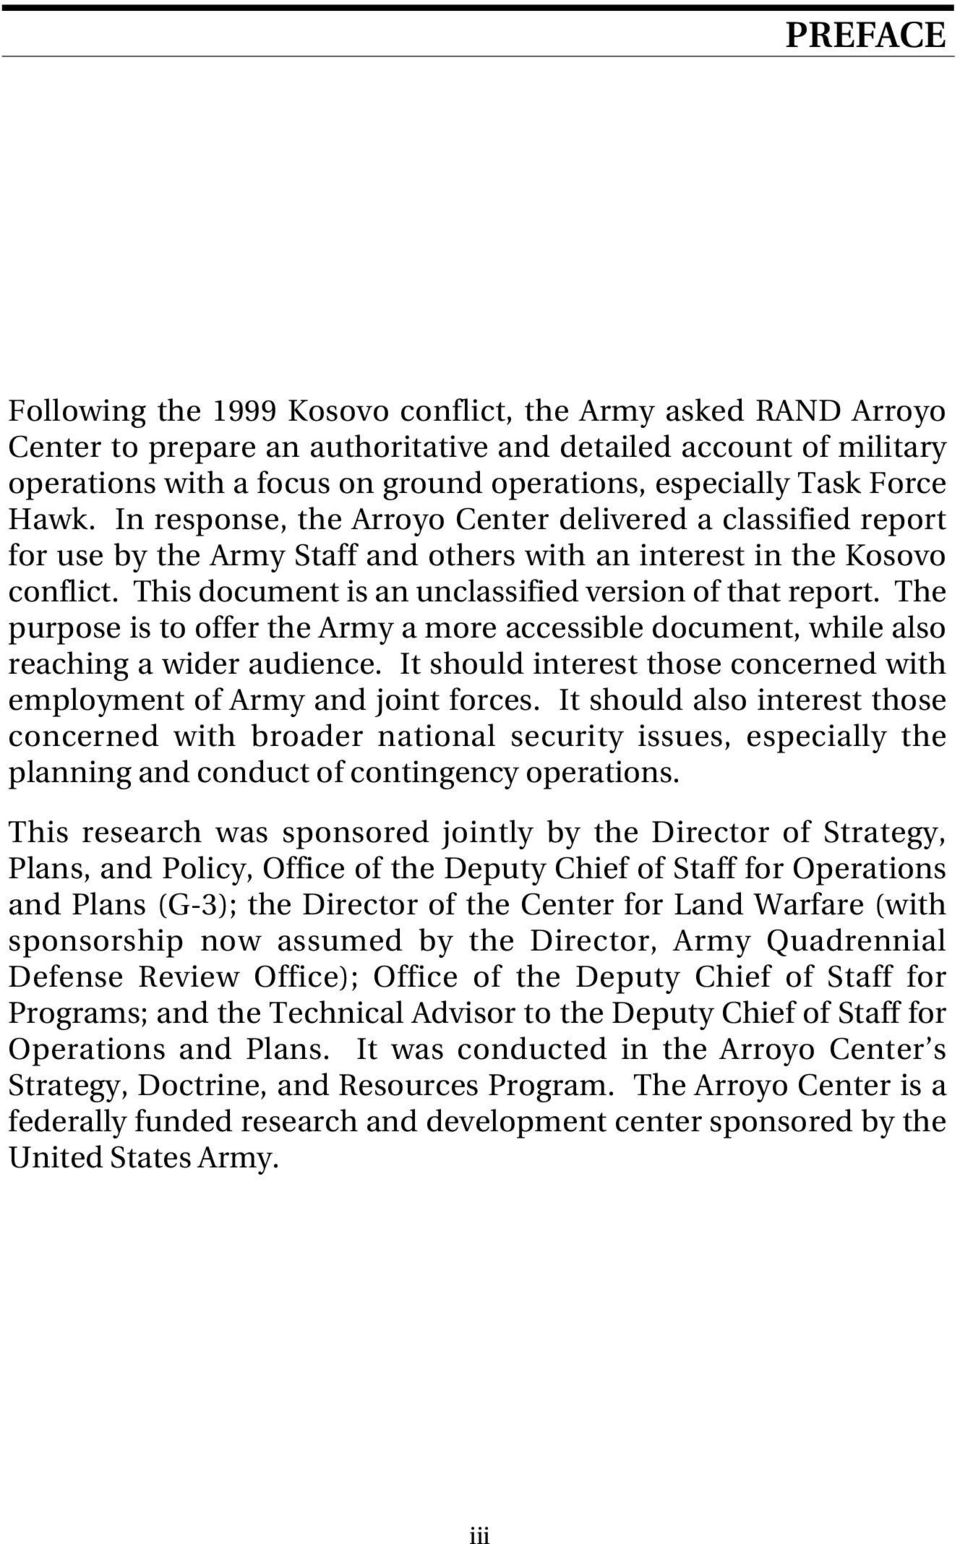 This document is an unclassified version of that report. The purpose is to offer the Army a more accessible document, while also reaching a wider audience.